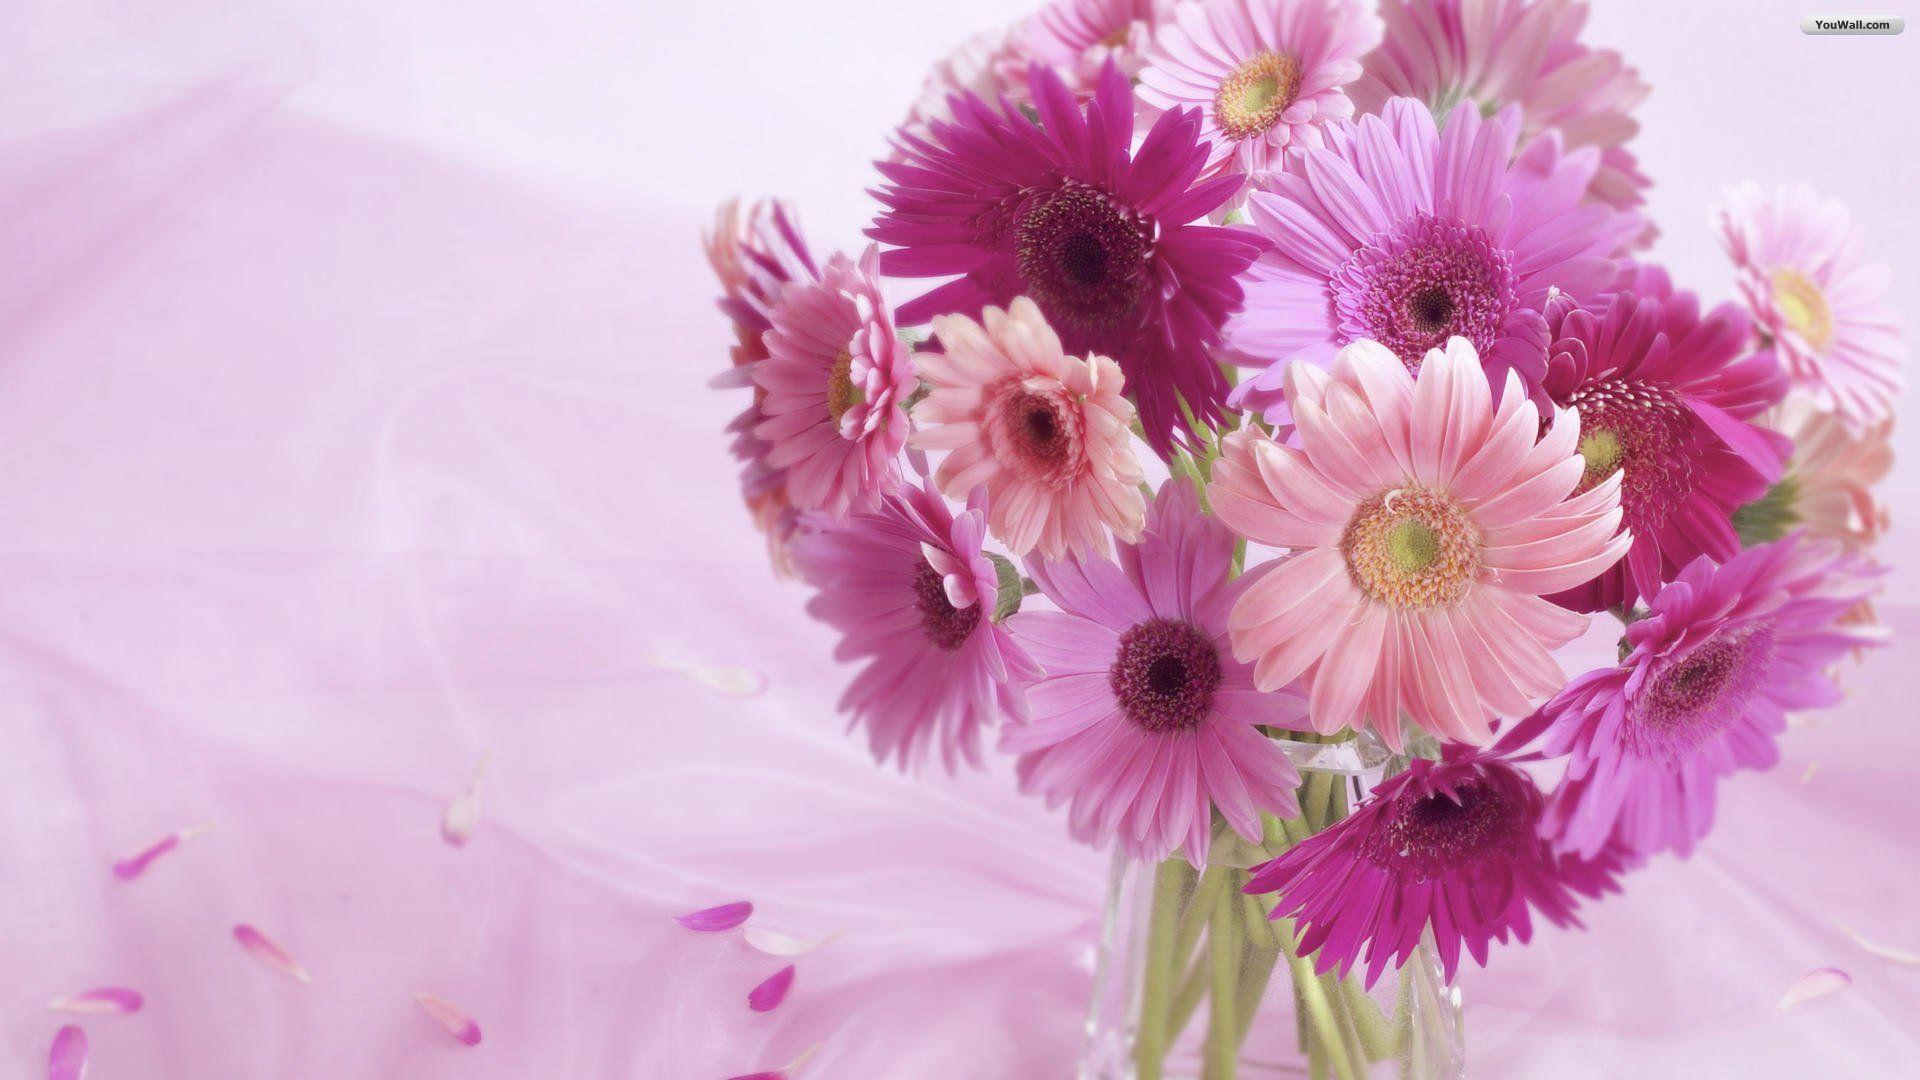 YouWall - Pink Flowers Wallpaper - wallpaper,wallpapers,free ...